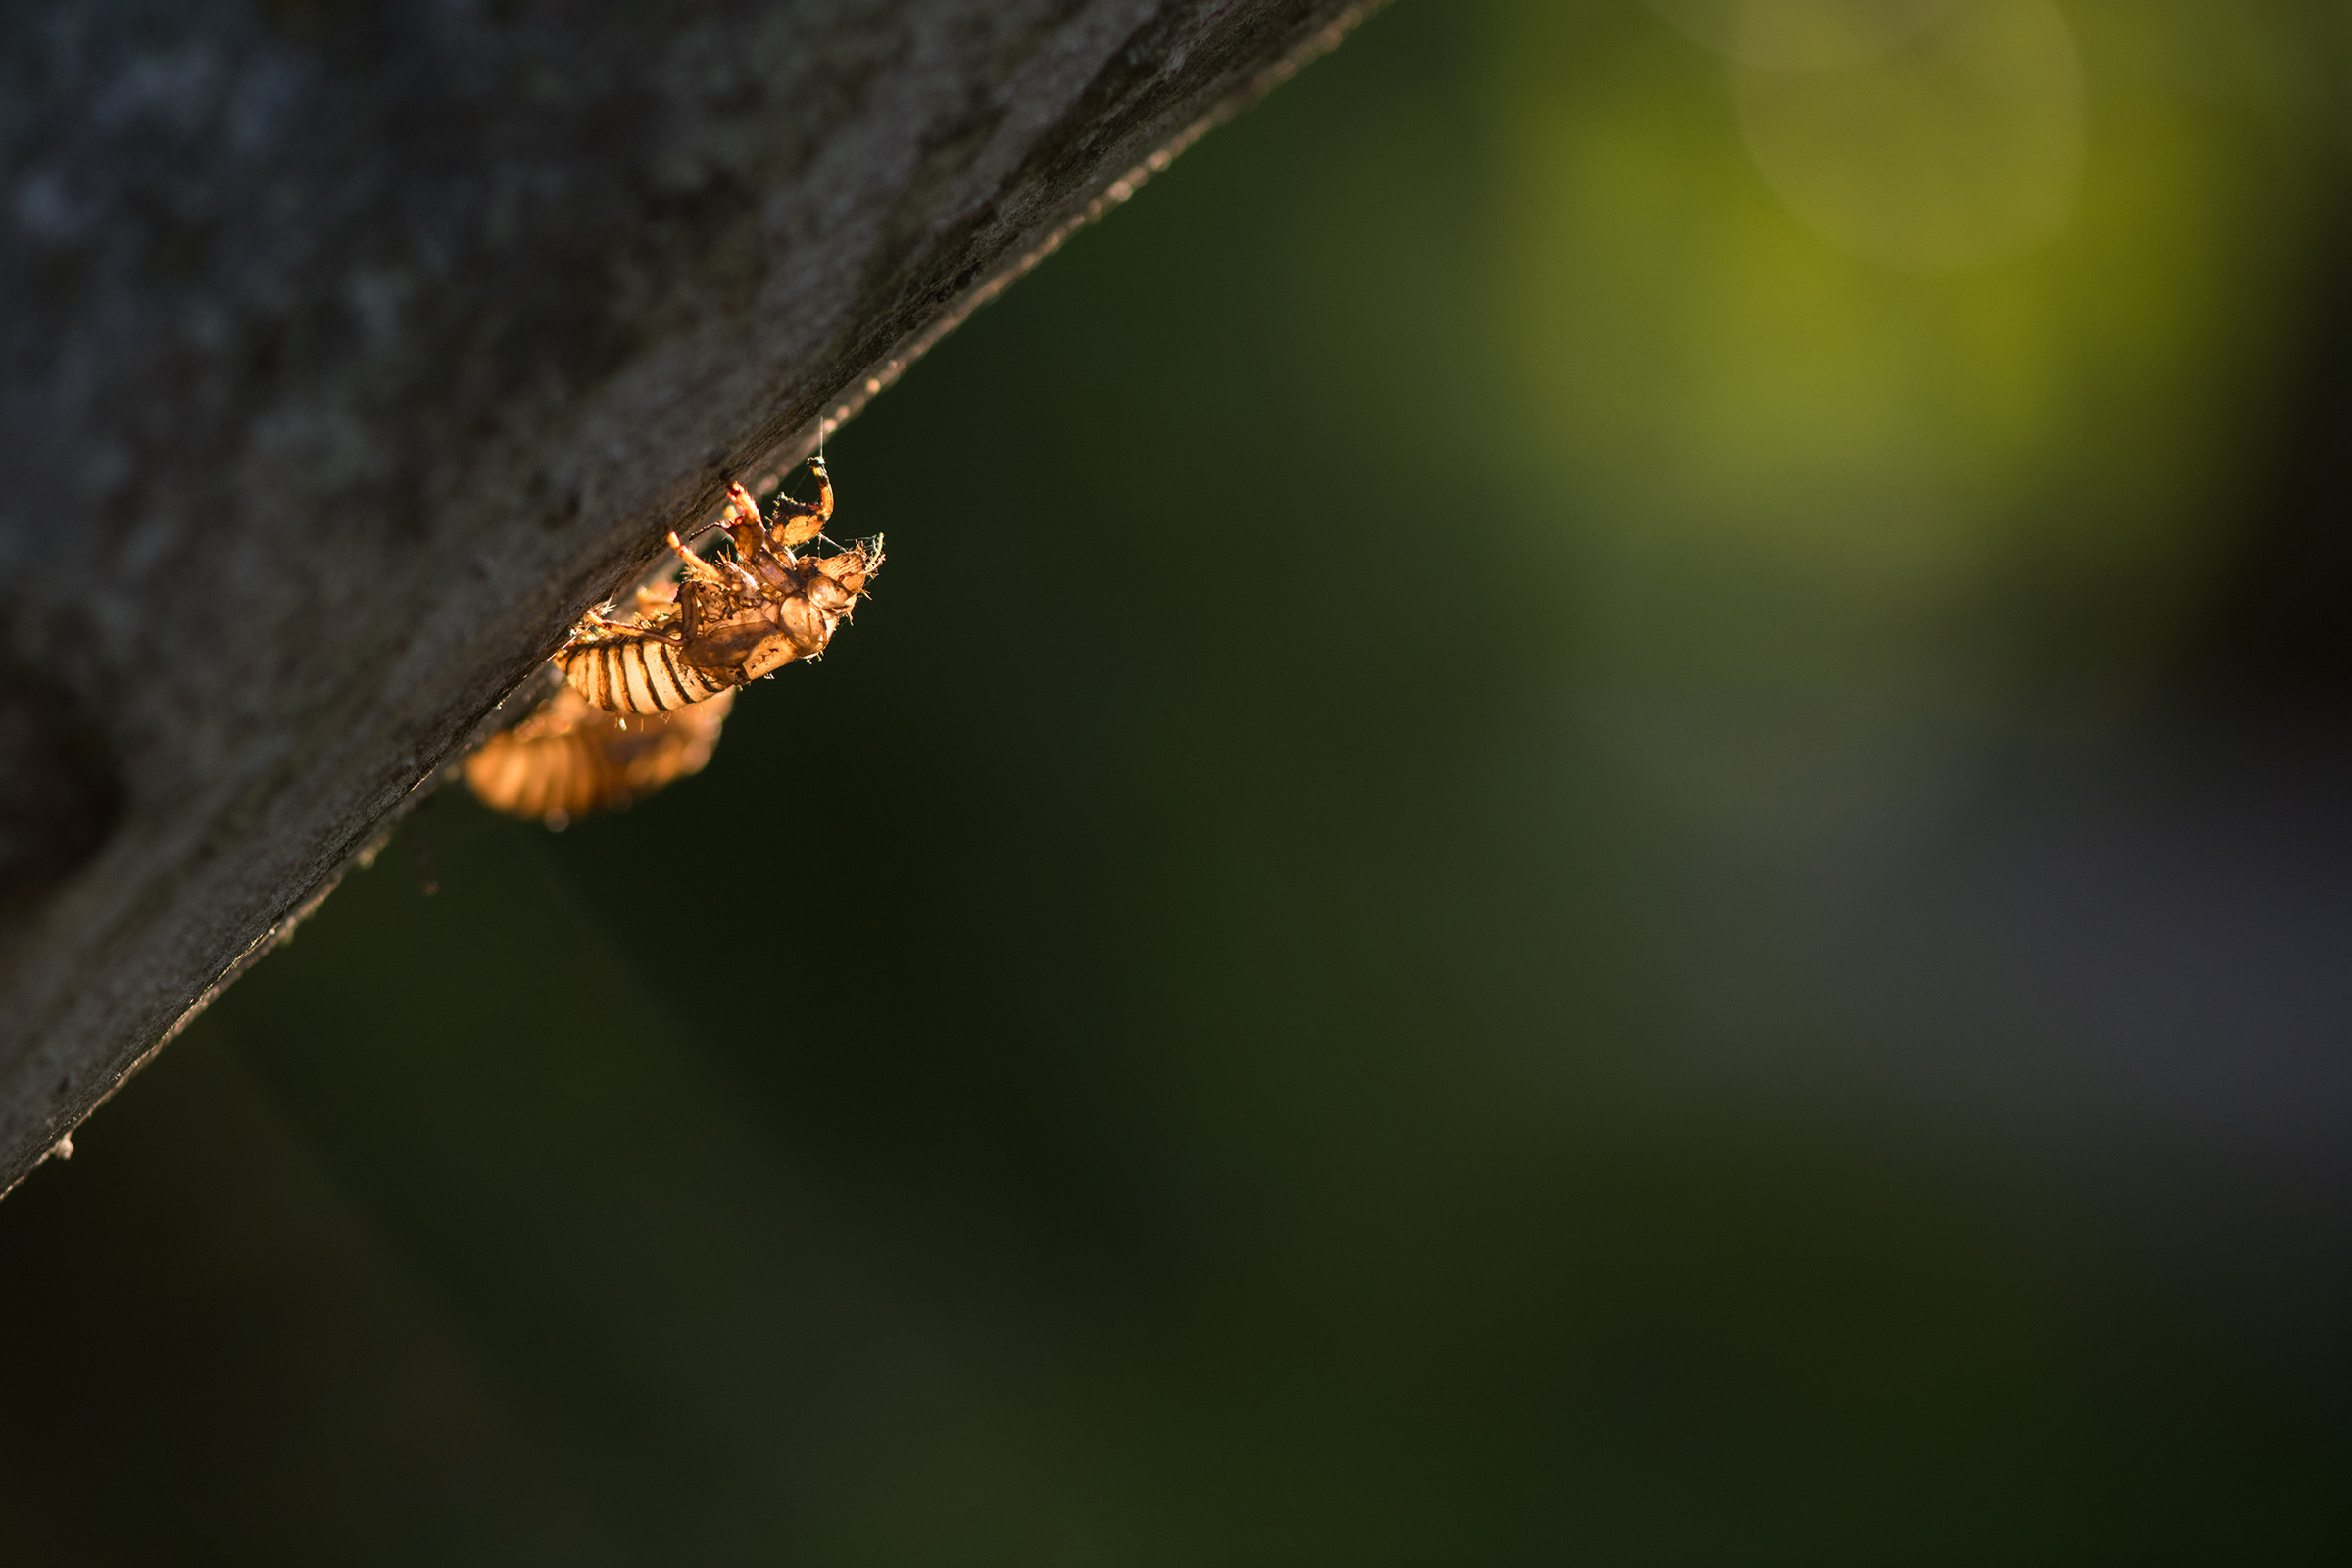 A Brood X cicada exoskeleton remains attached to the trunk of a tree in the Ohio River Valley.